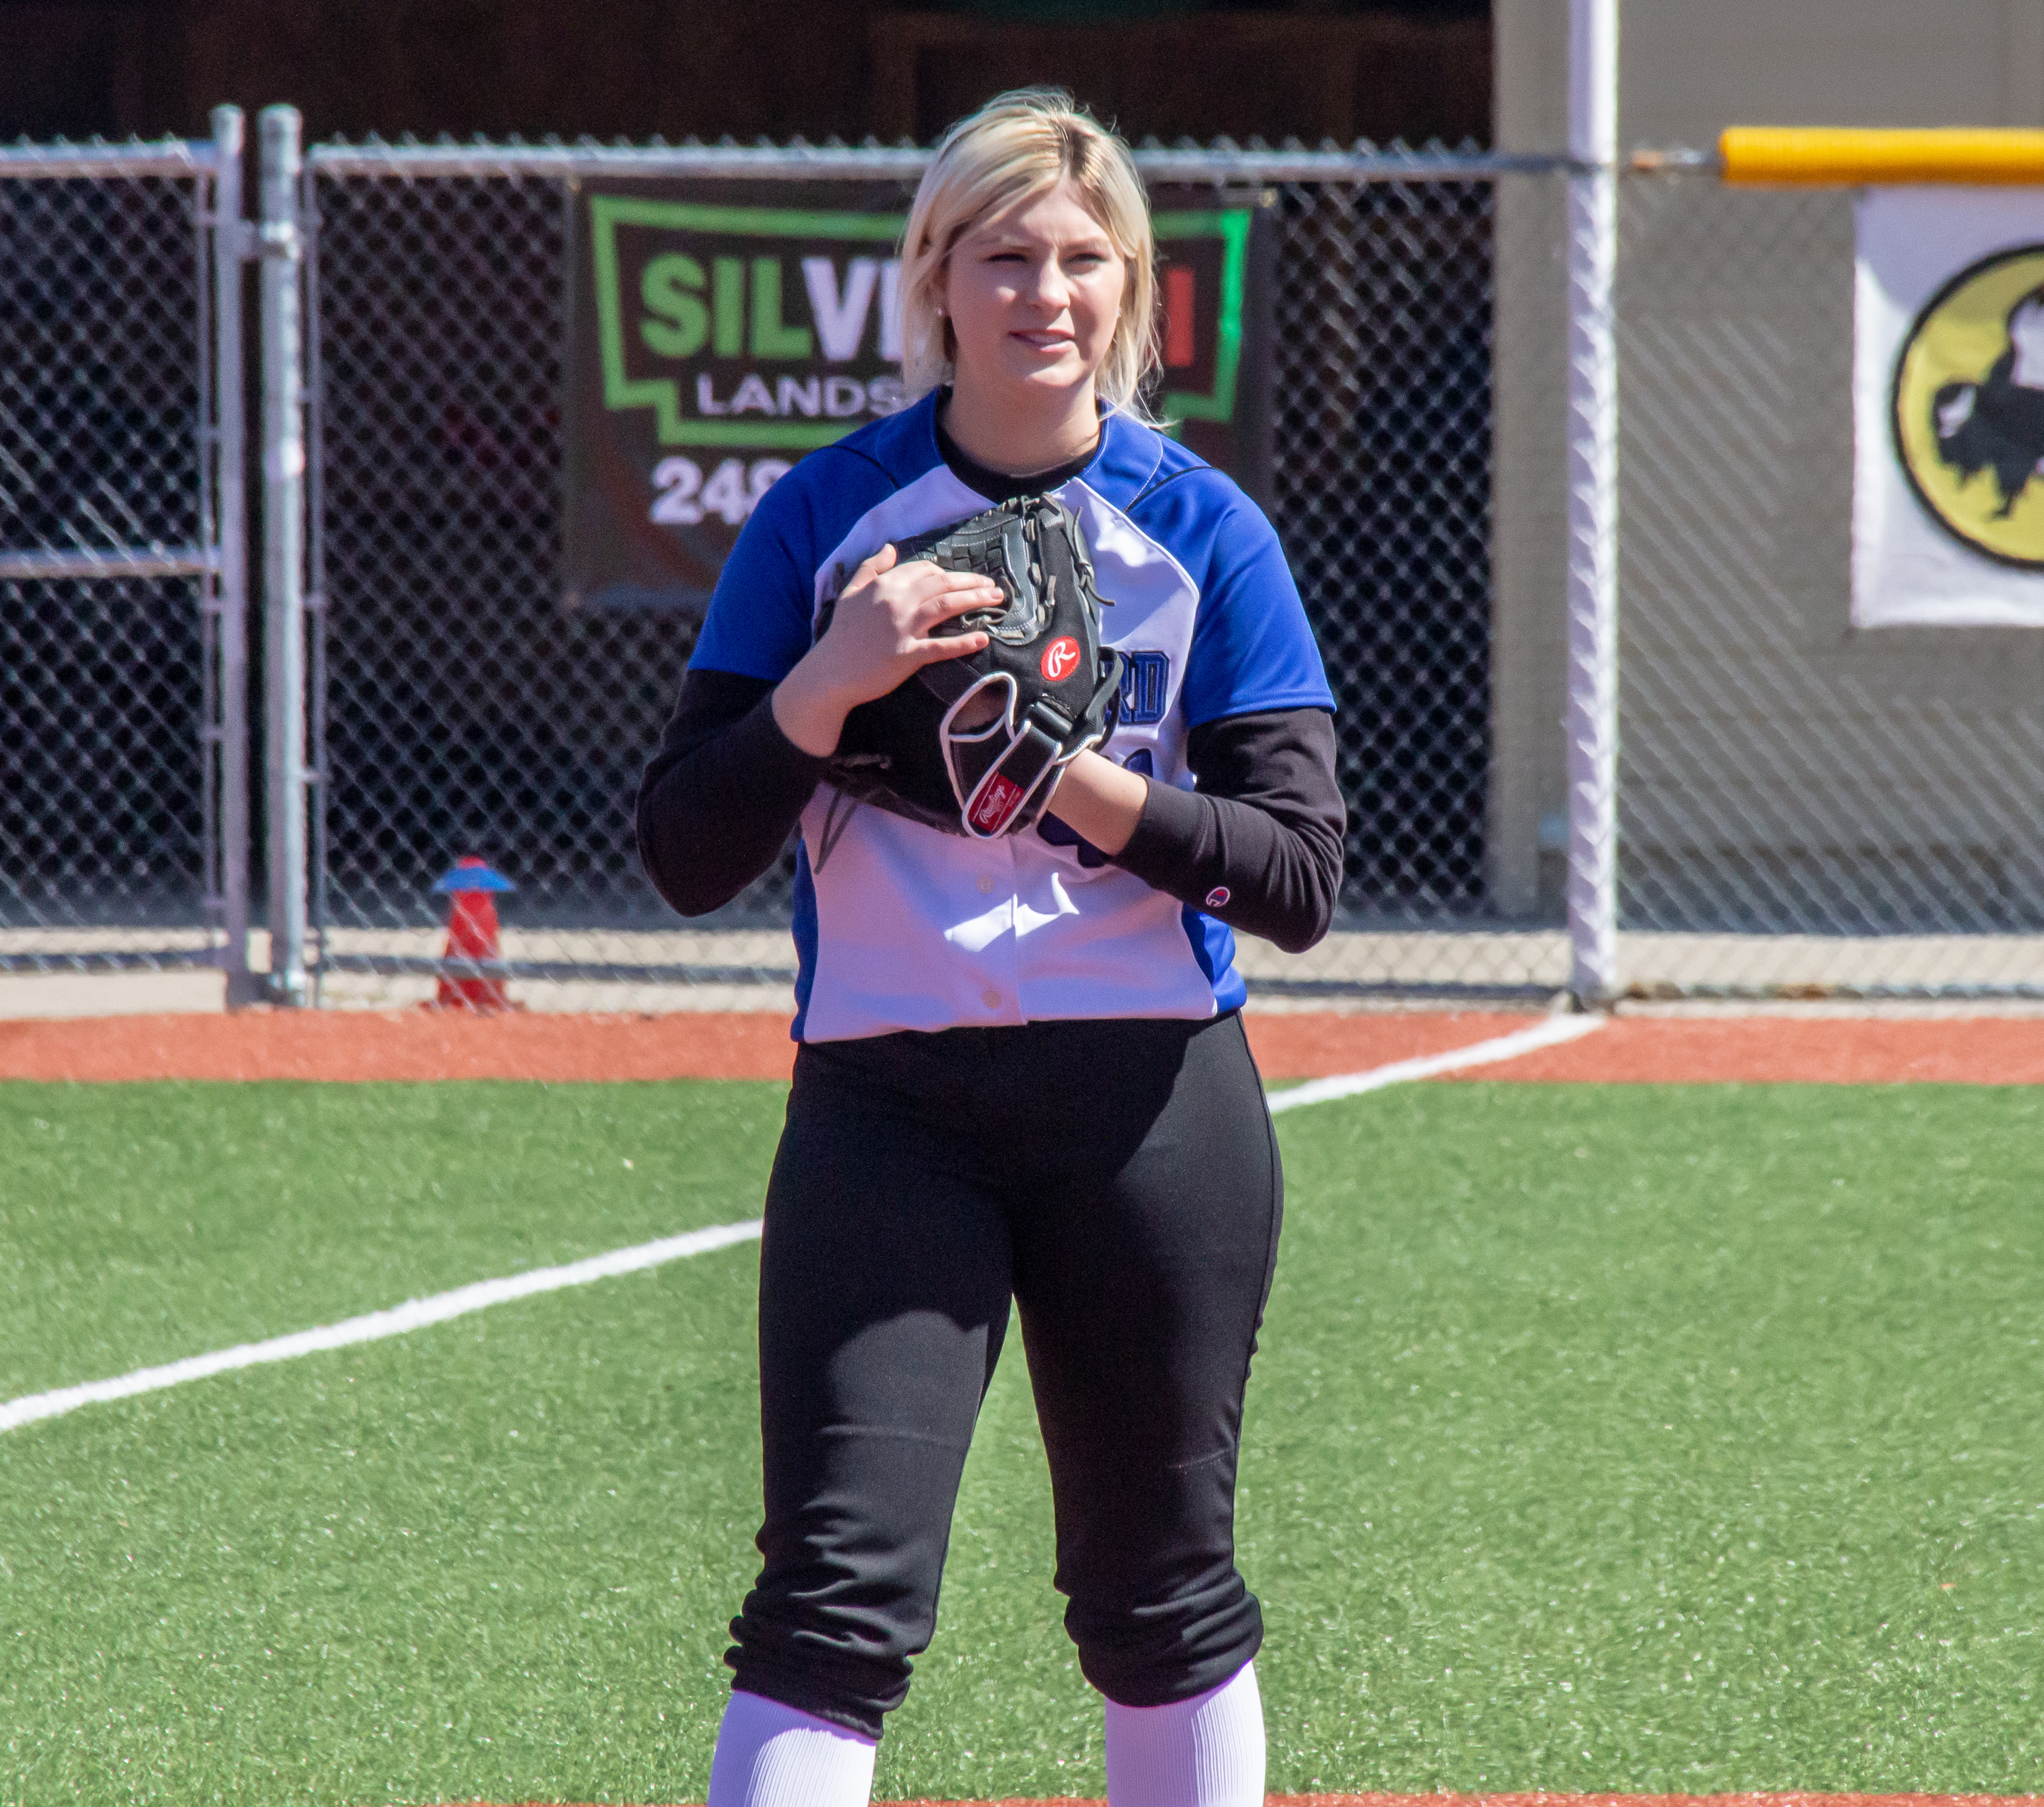 Photo of HFC softball player Katelyn Sadowski